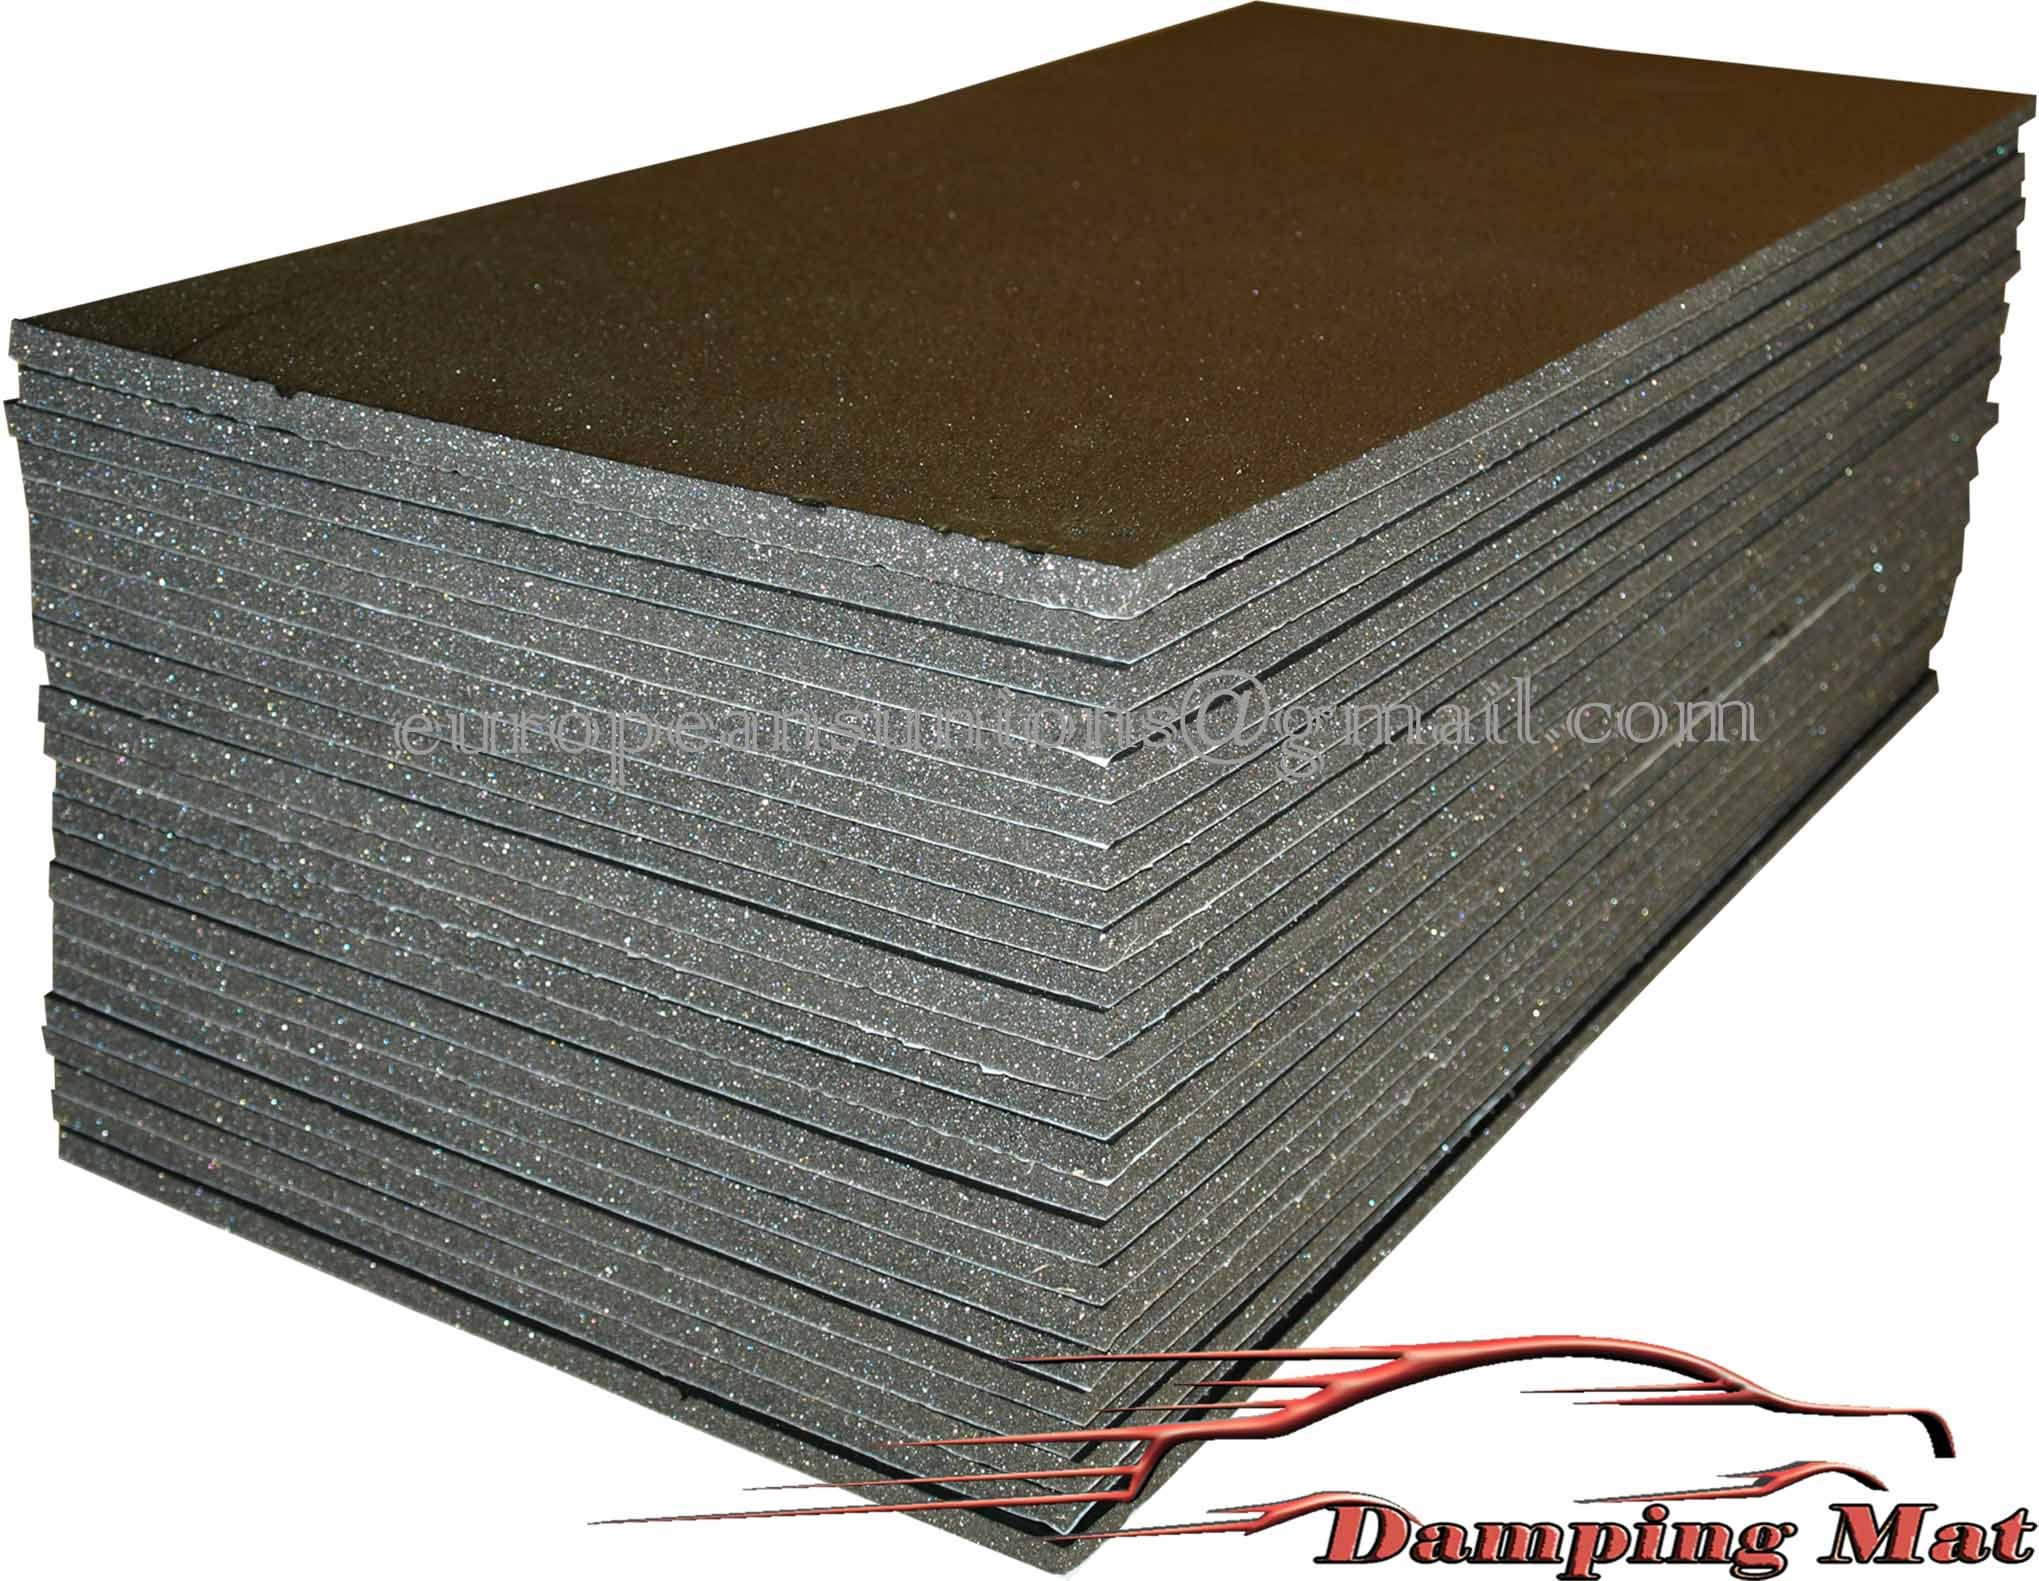 Sound Proof Insulation : Sheets sq ft for all car vehicle sound